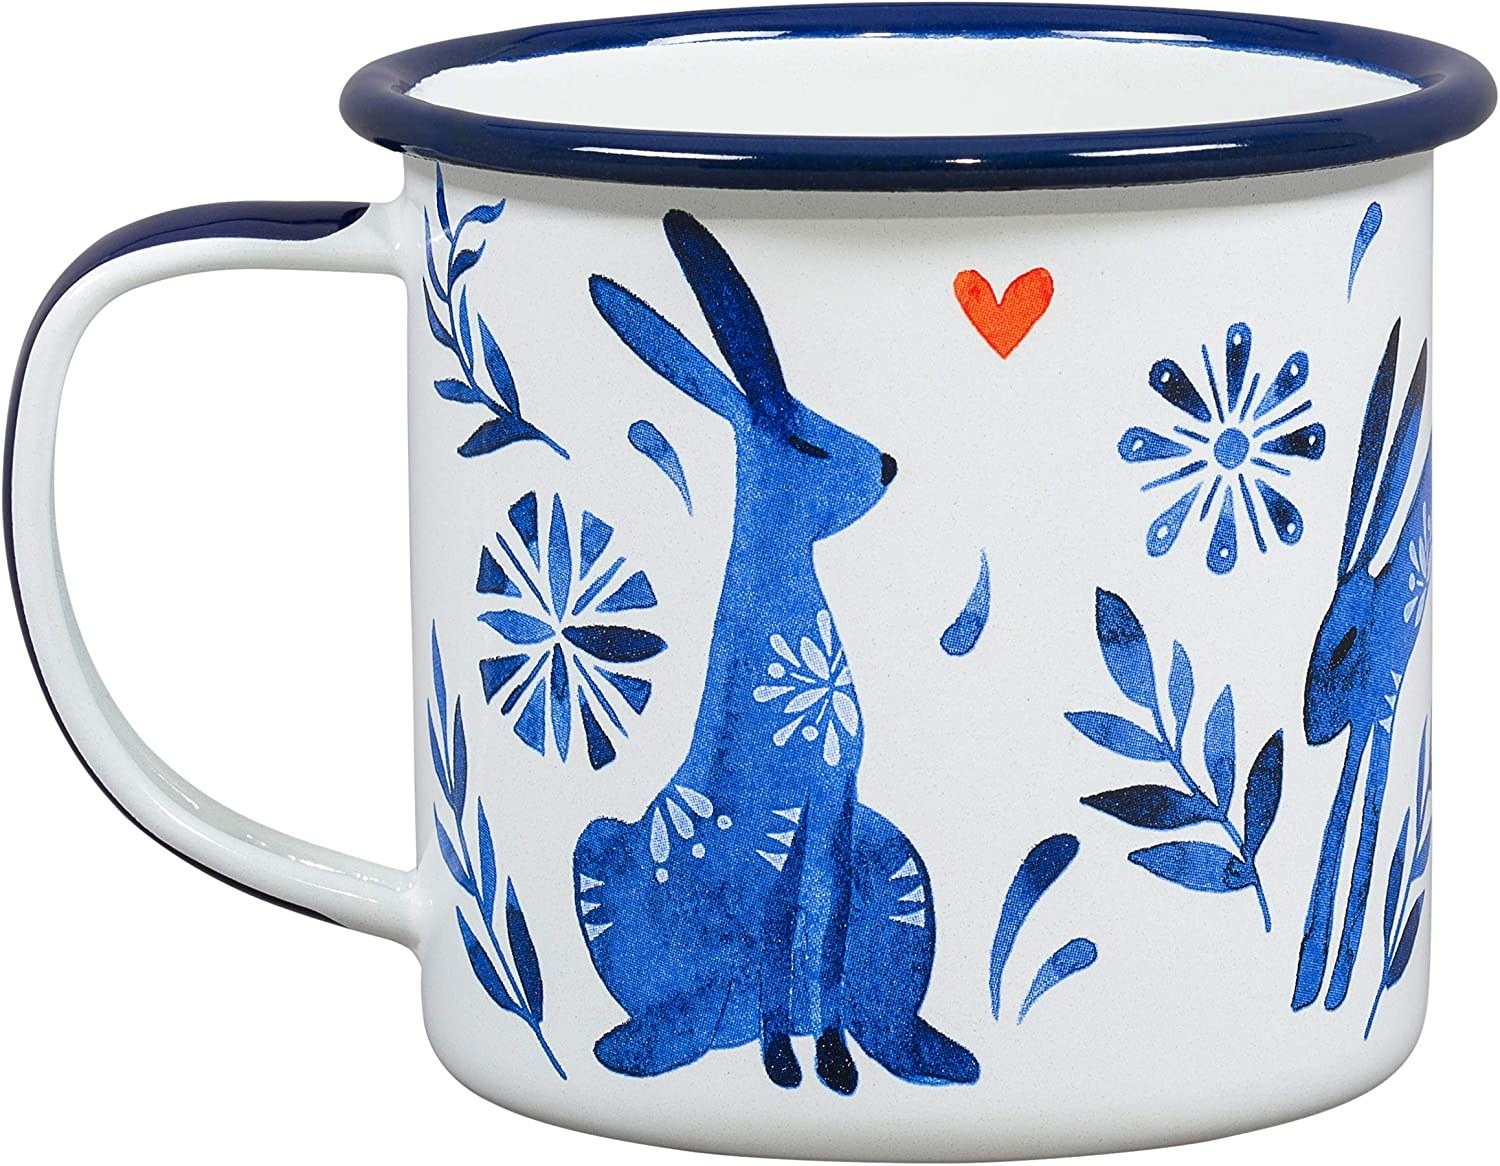 A white mug with stylized blue animals